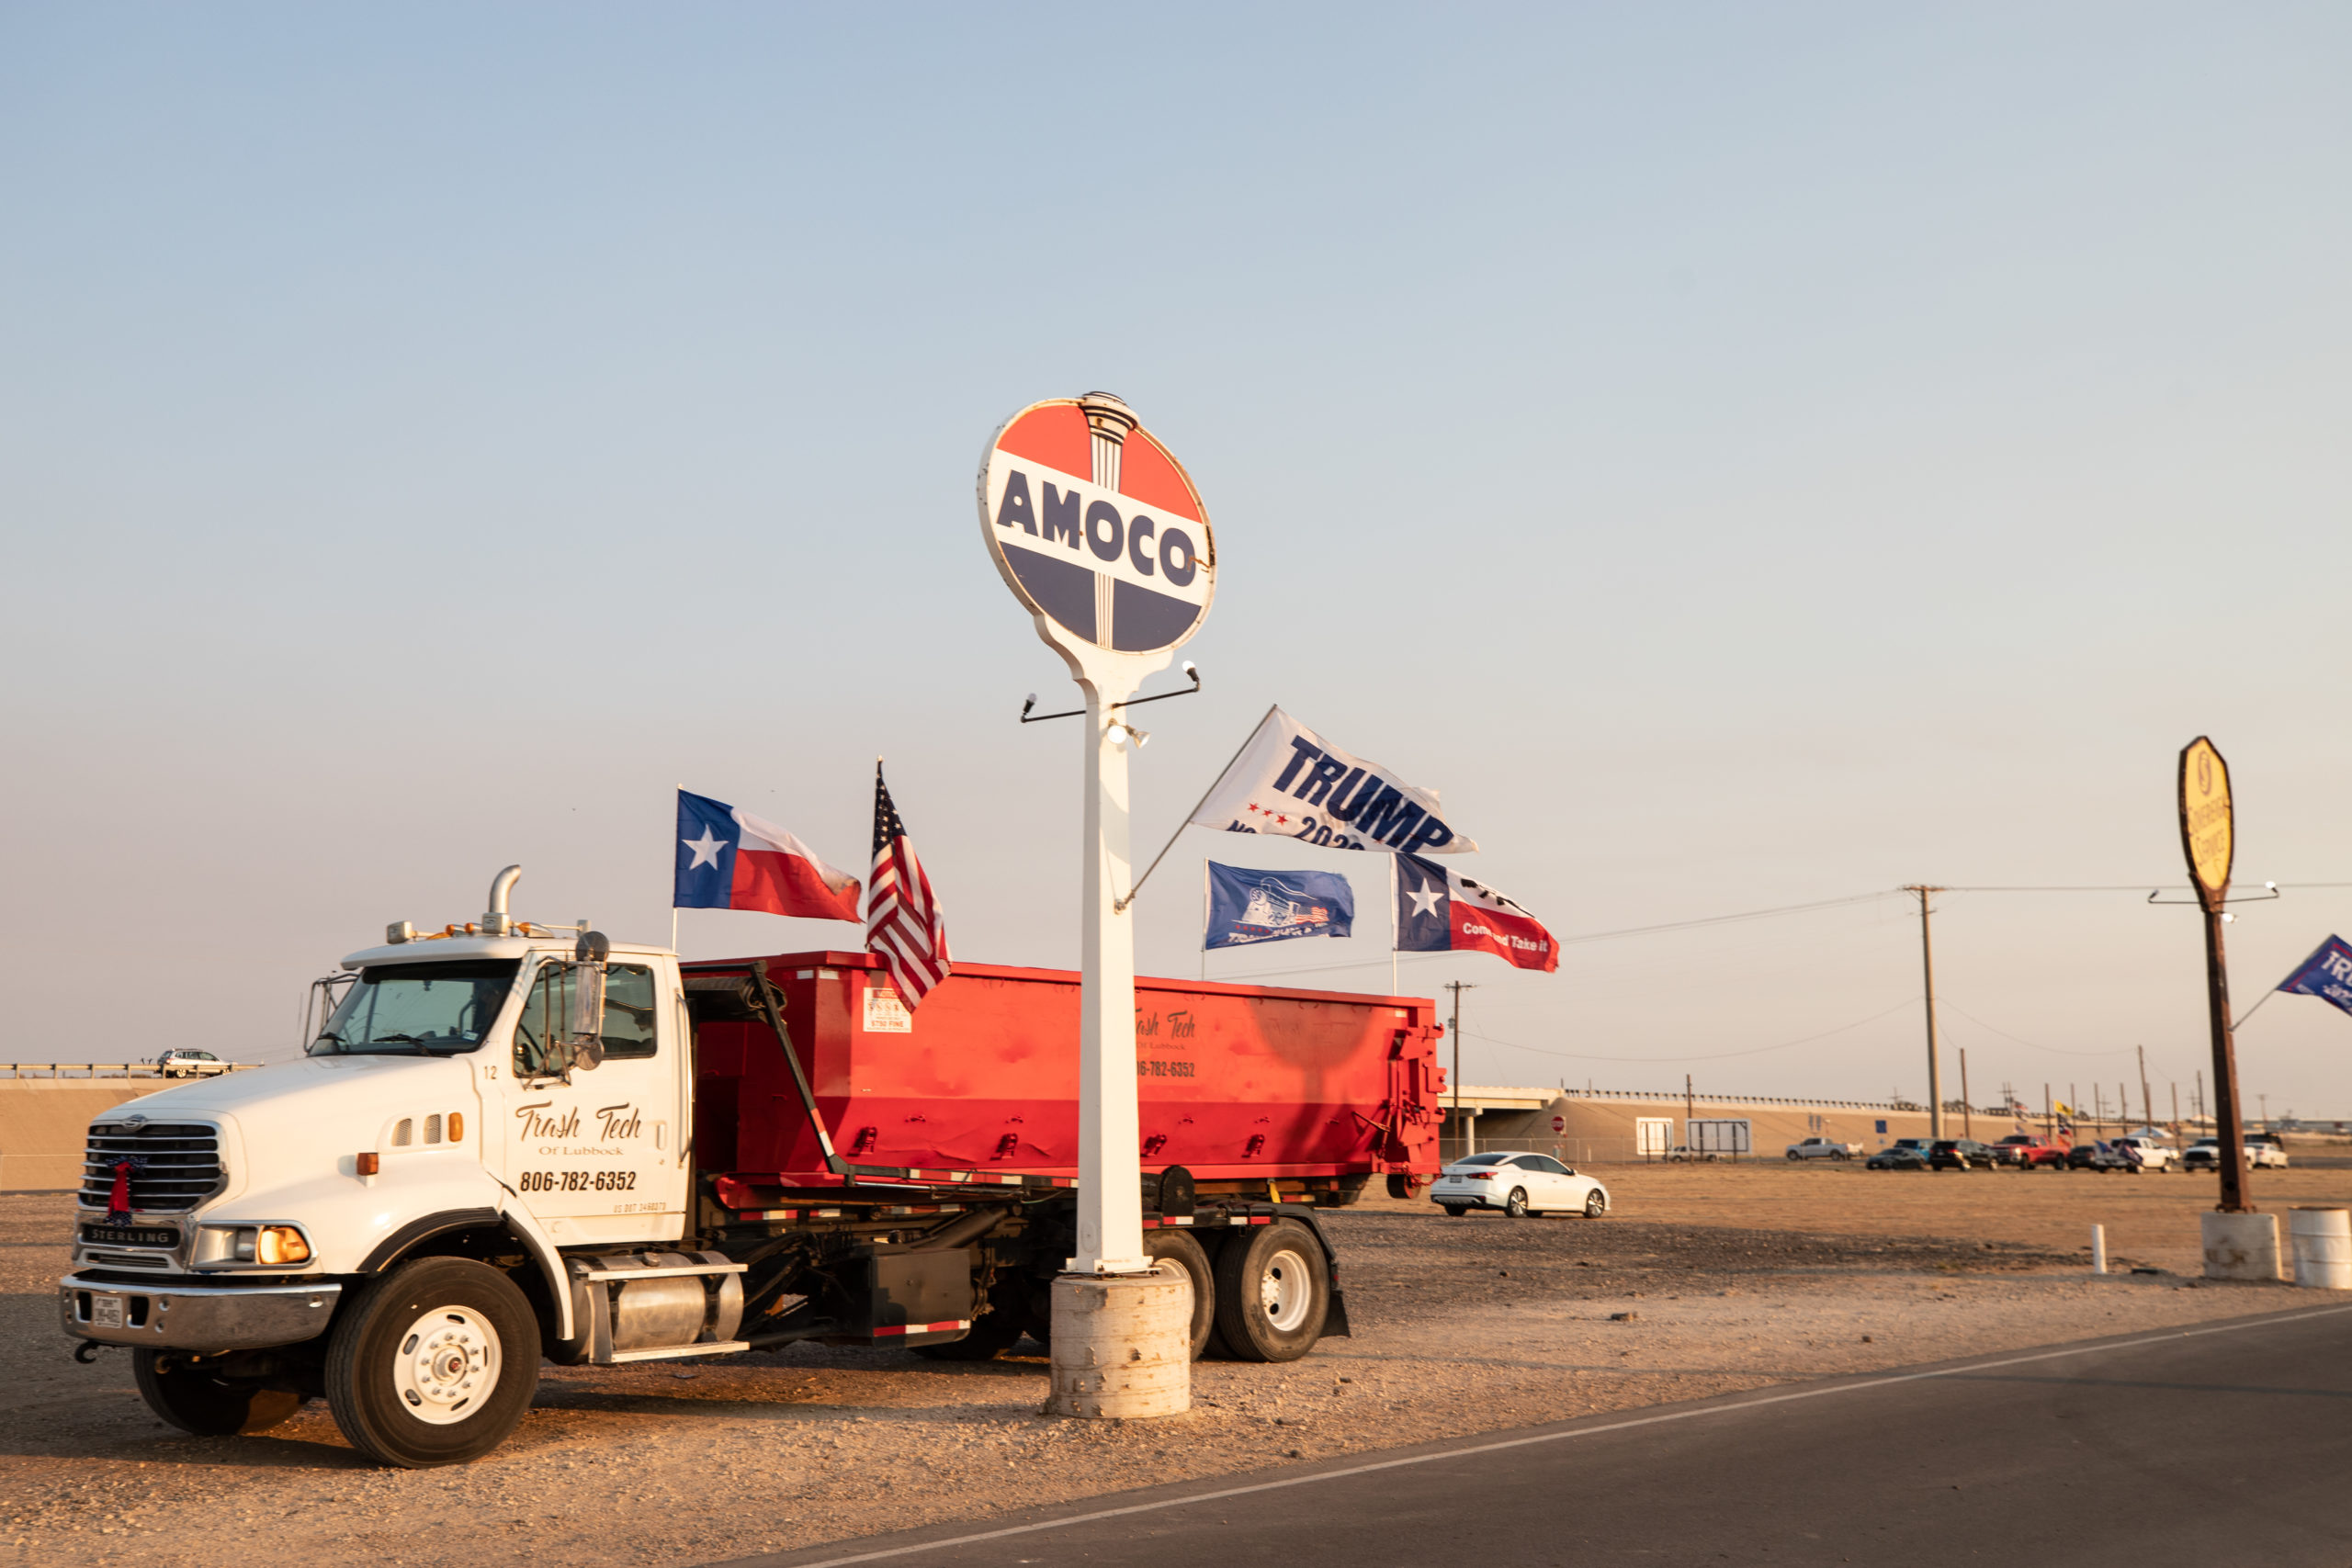 """A truck with Texas, American, and """"Trump train"""" flags returned to Cook's Garage after a """"Trump Train"""" car parade in Lubbock, Texas, on Sunday, Oct. 18, 2020. (Kaylee Greenlee - DCNF)"""